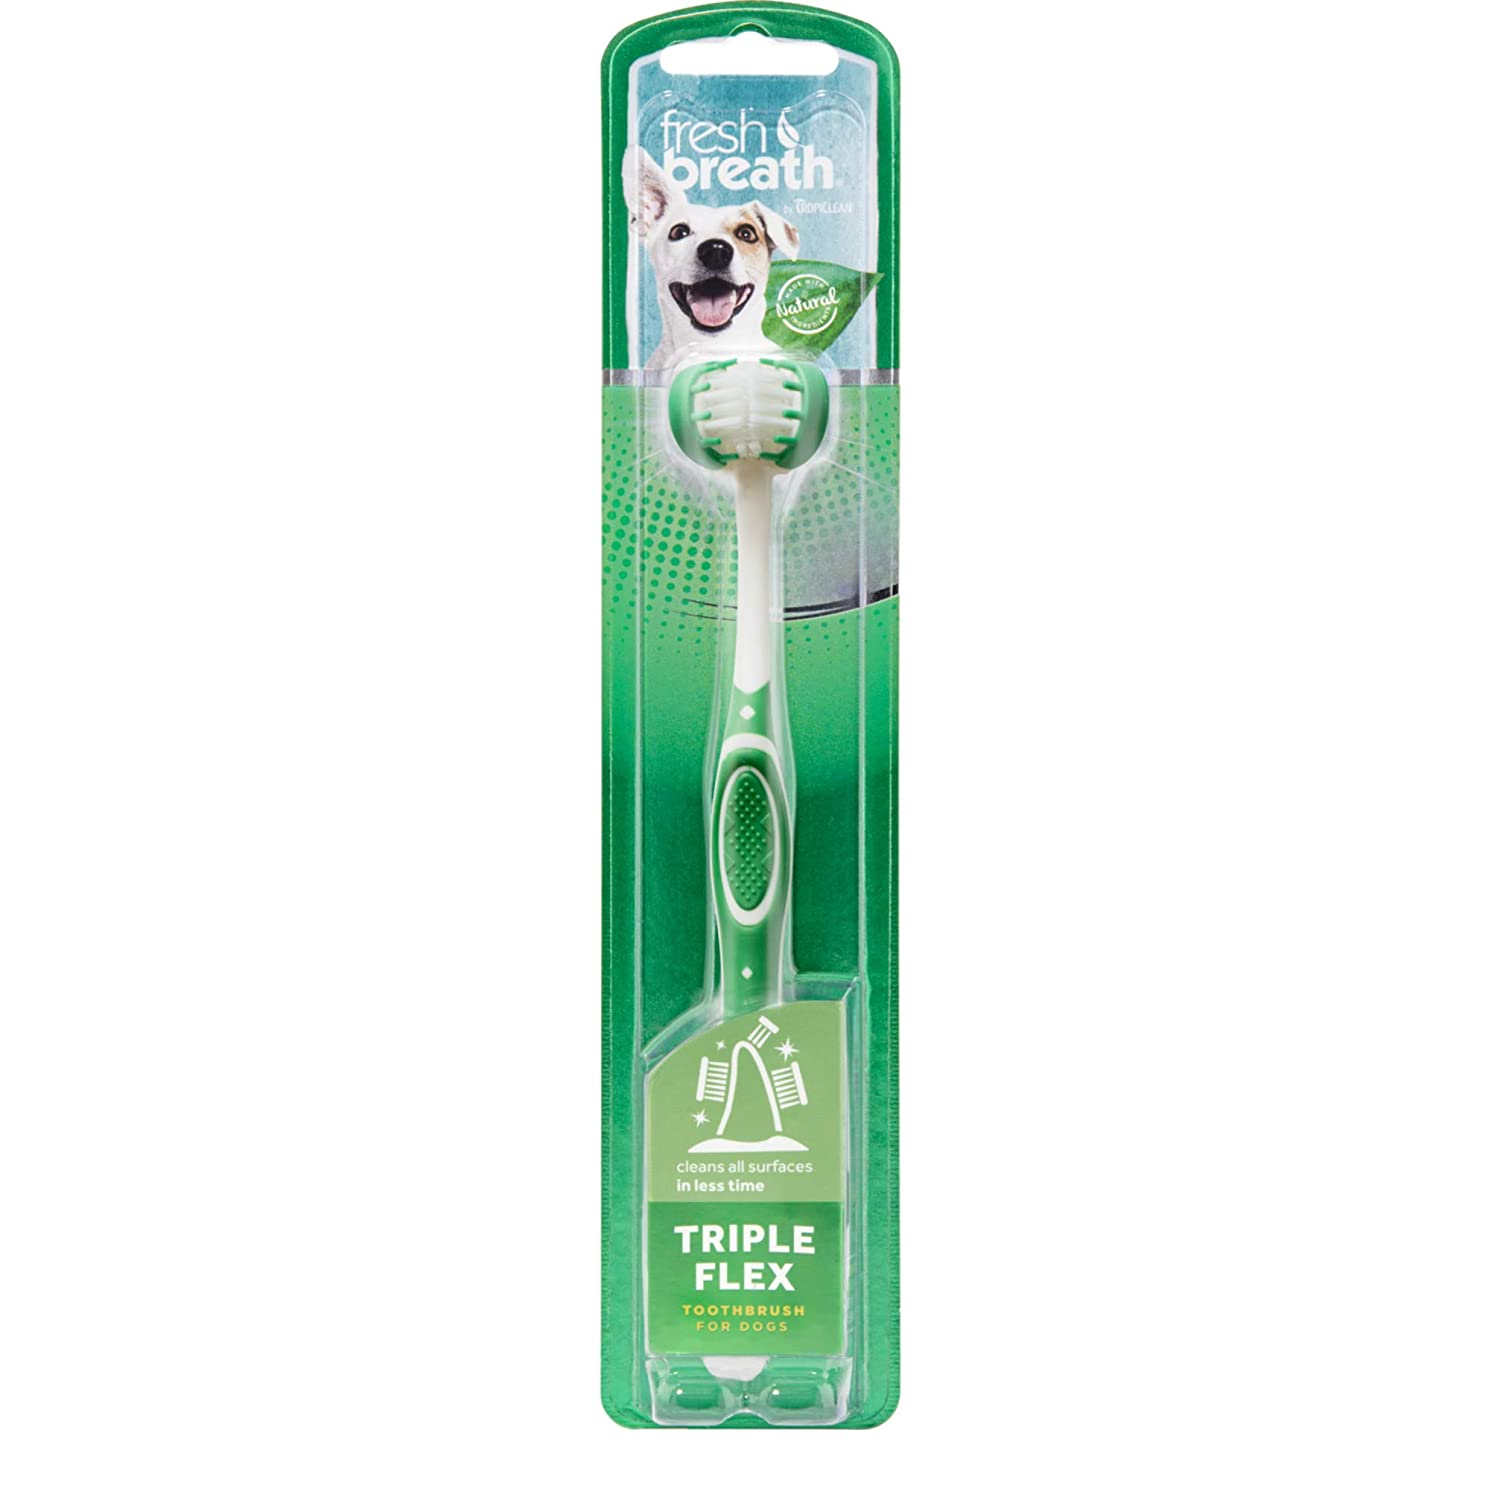 TropiClean Fresh Breath Oral Care Kit for Pets